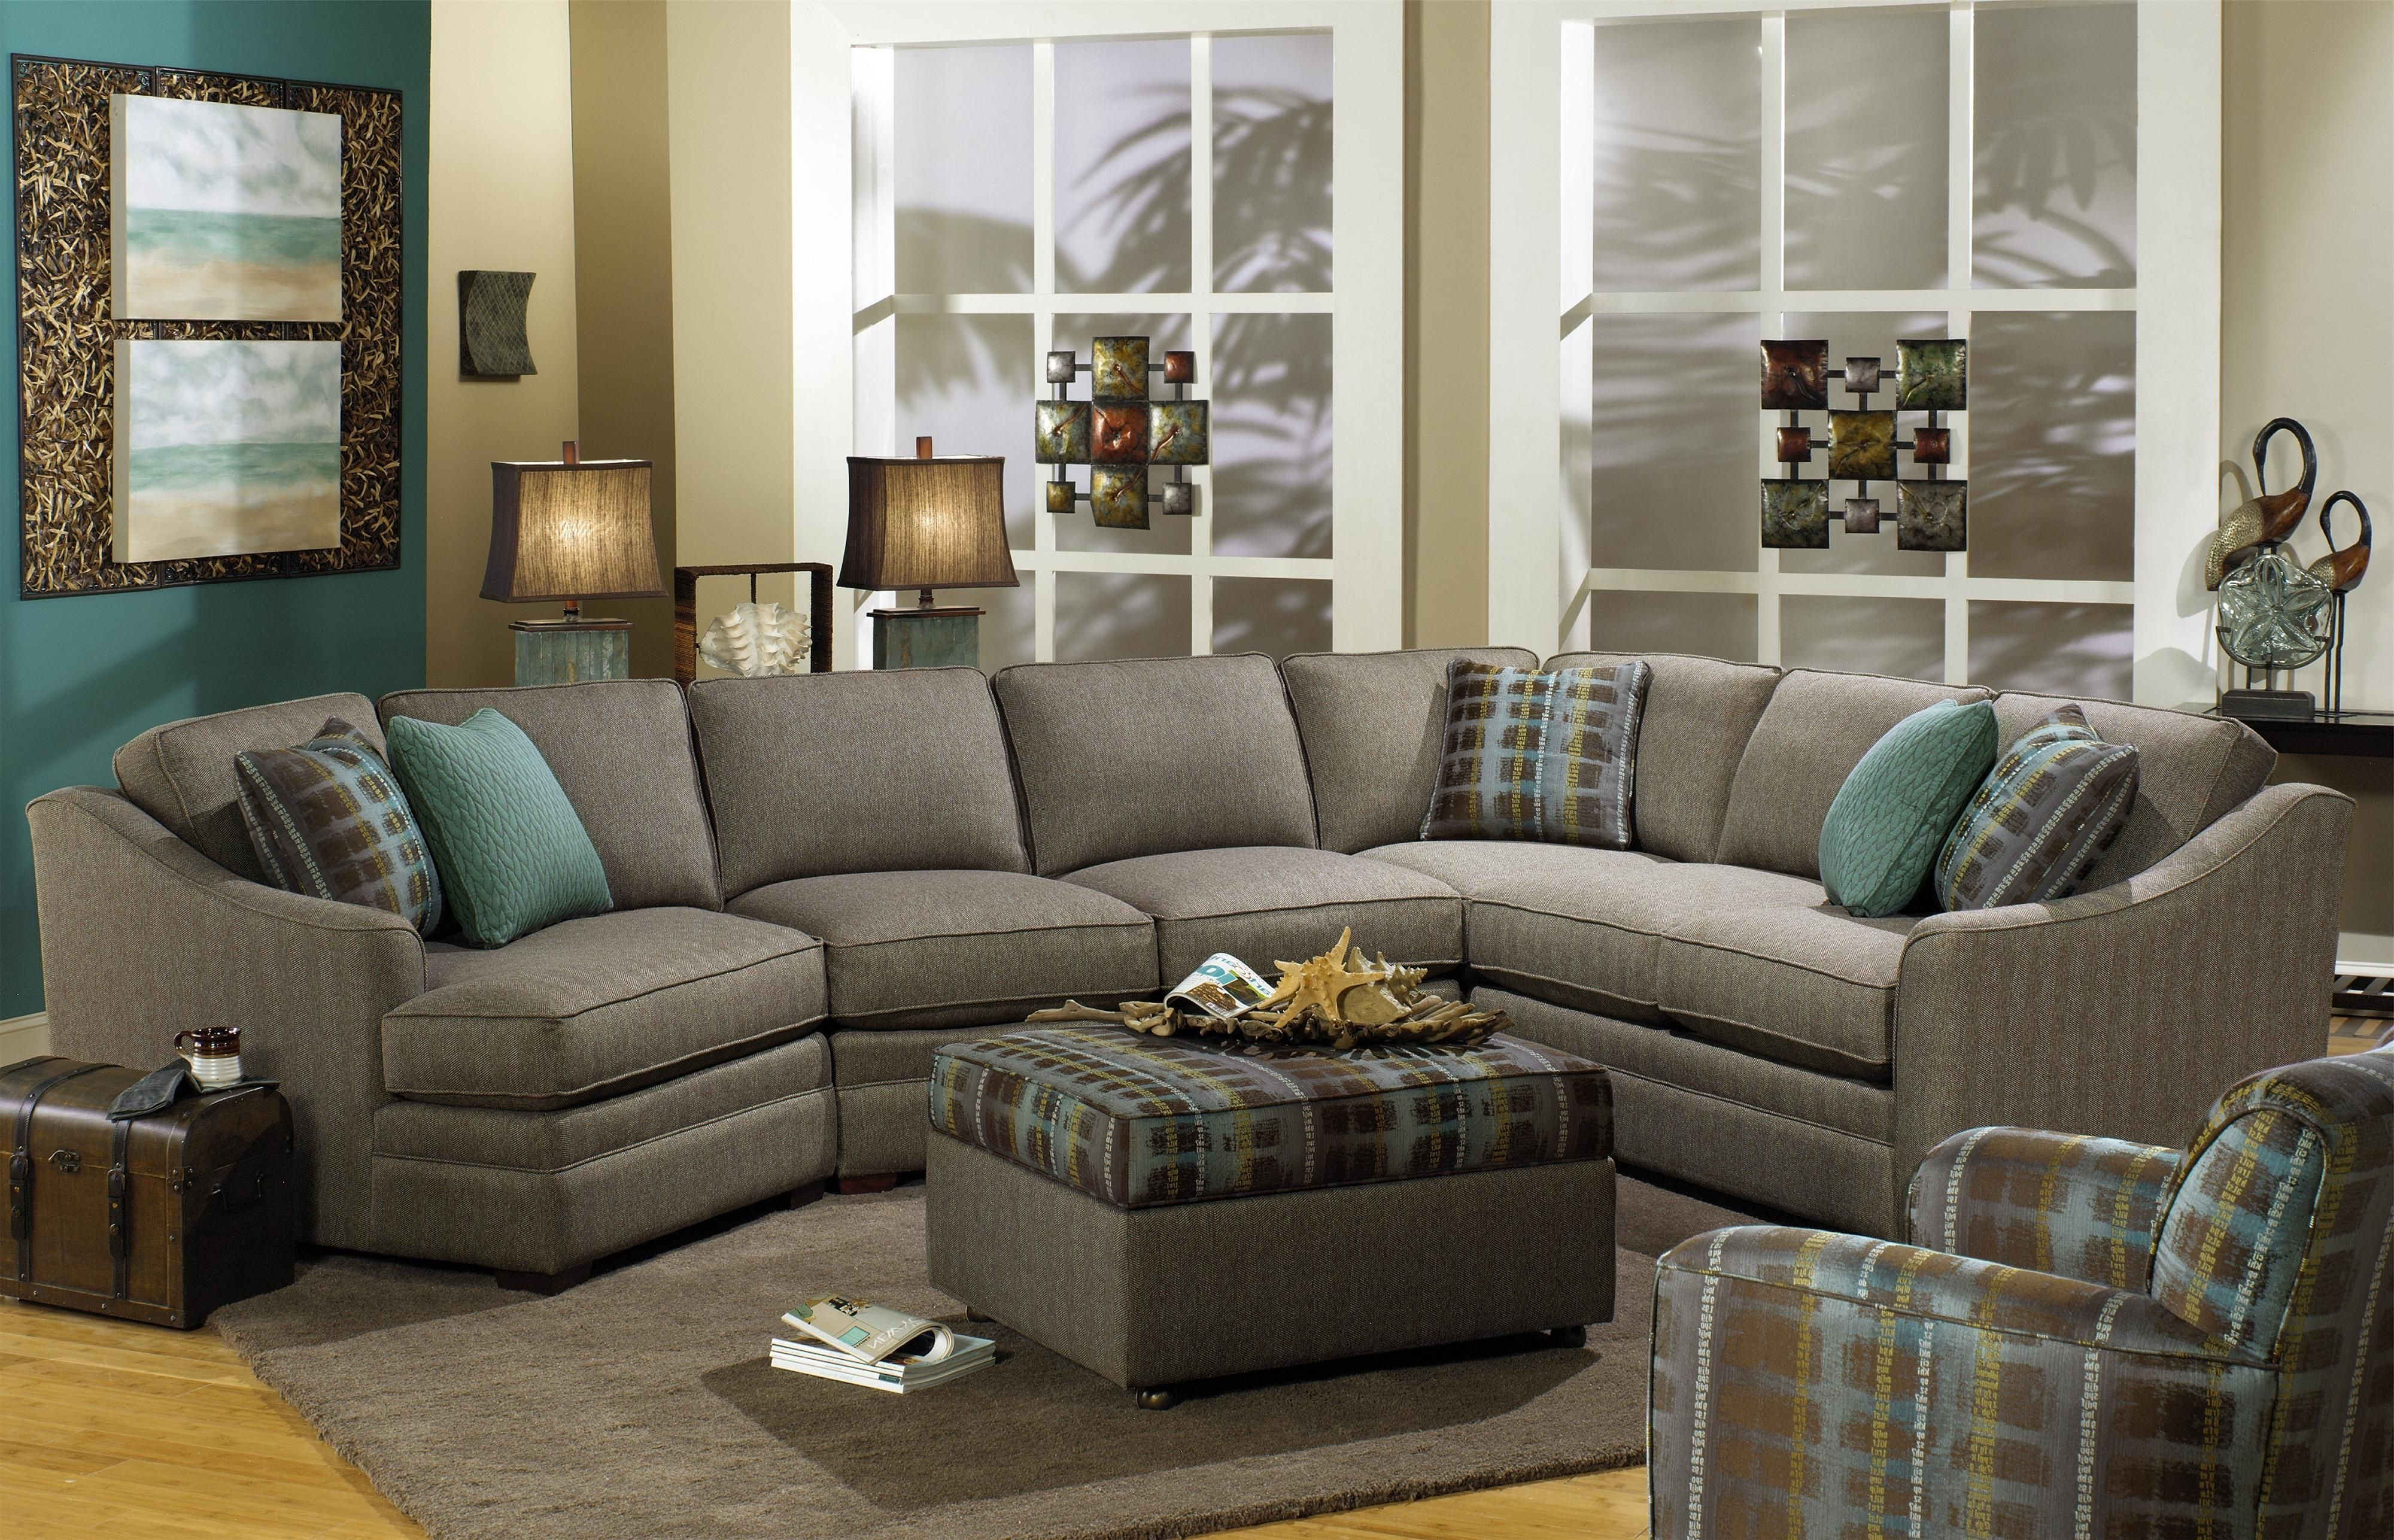 Popular F9 Custom Collection Customizable 3 Piece Sectional With Laf Throughout Murfreesboro Tn Sectional Sofas (View 10 of 15)